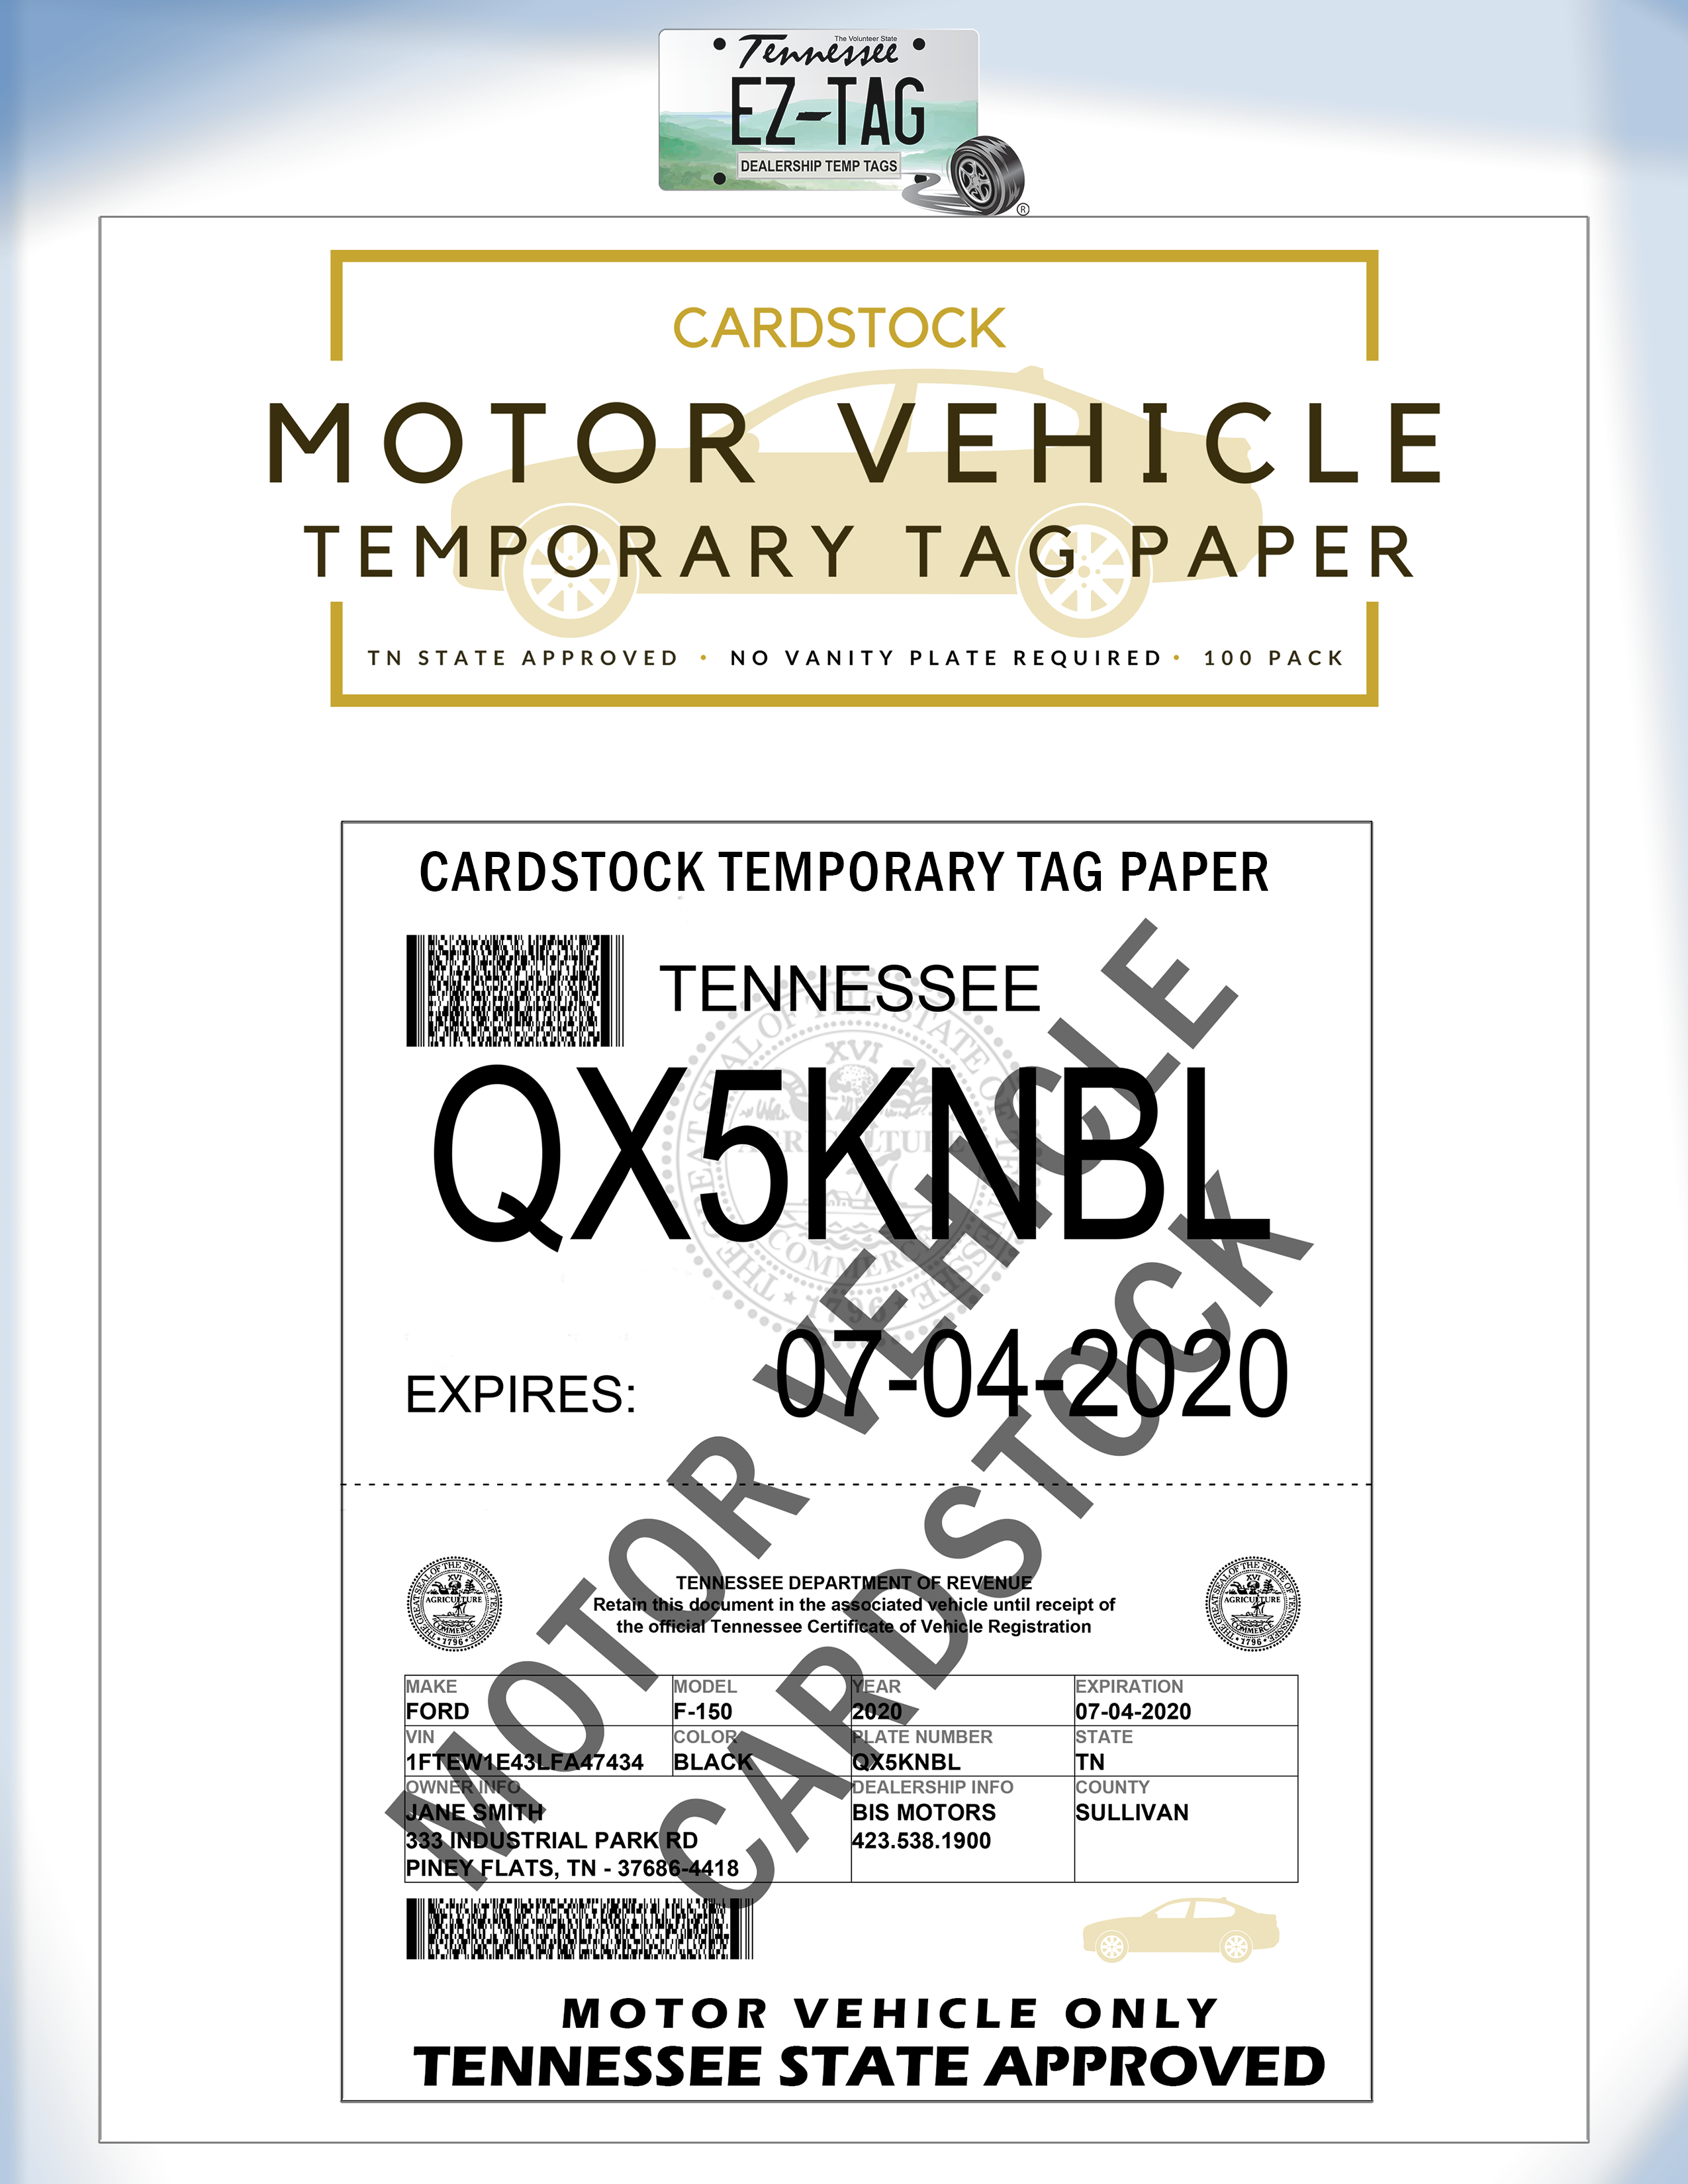 EZ Tag Motor Vehicle Temporary Tag Cardstock Paper (100 Pack)